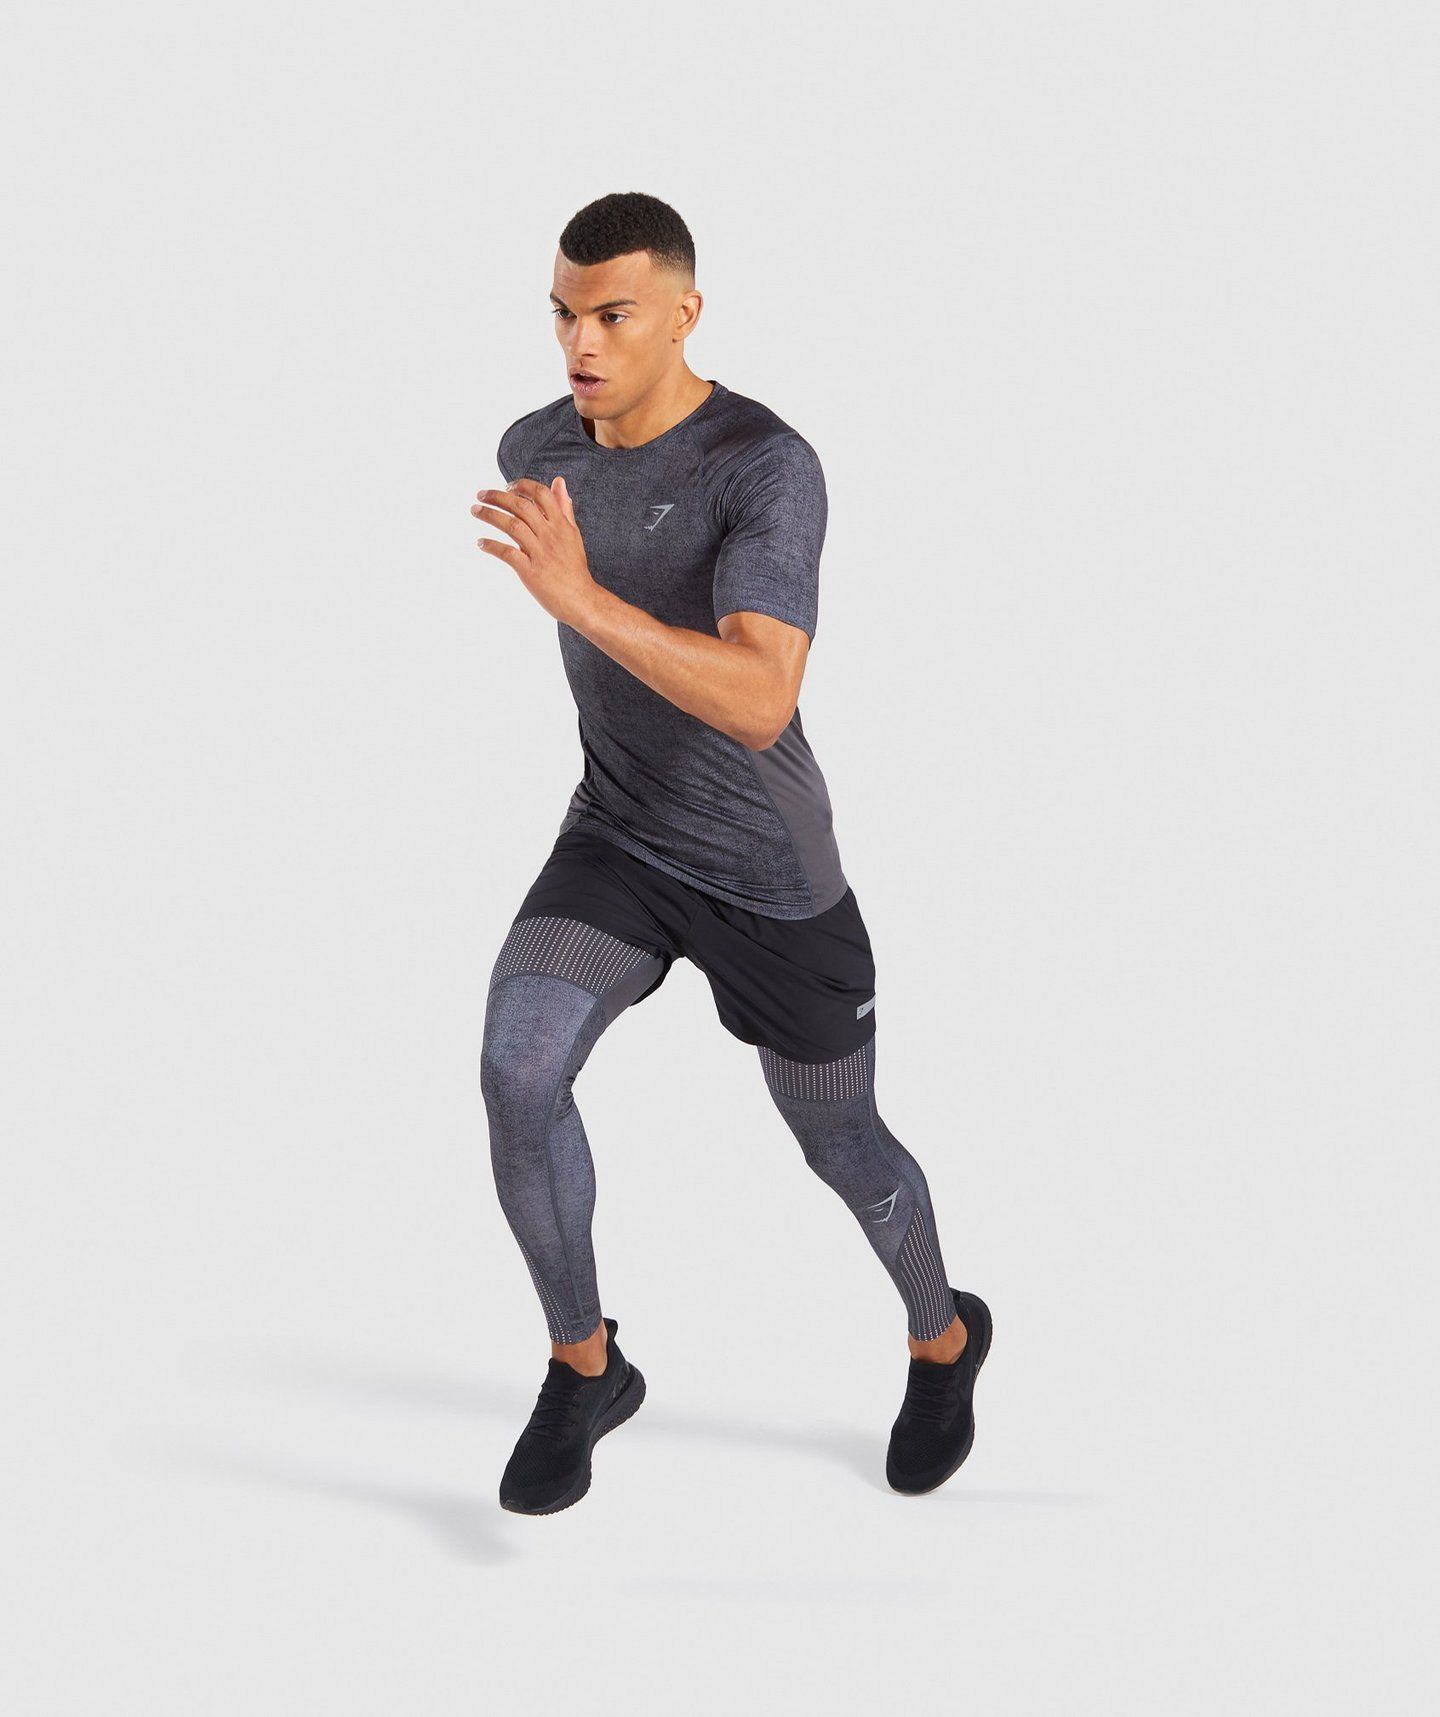 d63df4835 Gymshark Hybrid Baselayer Top - Charcoal Marl in 2019 | Himmat.Life ...